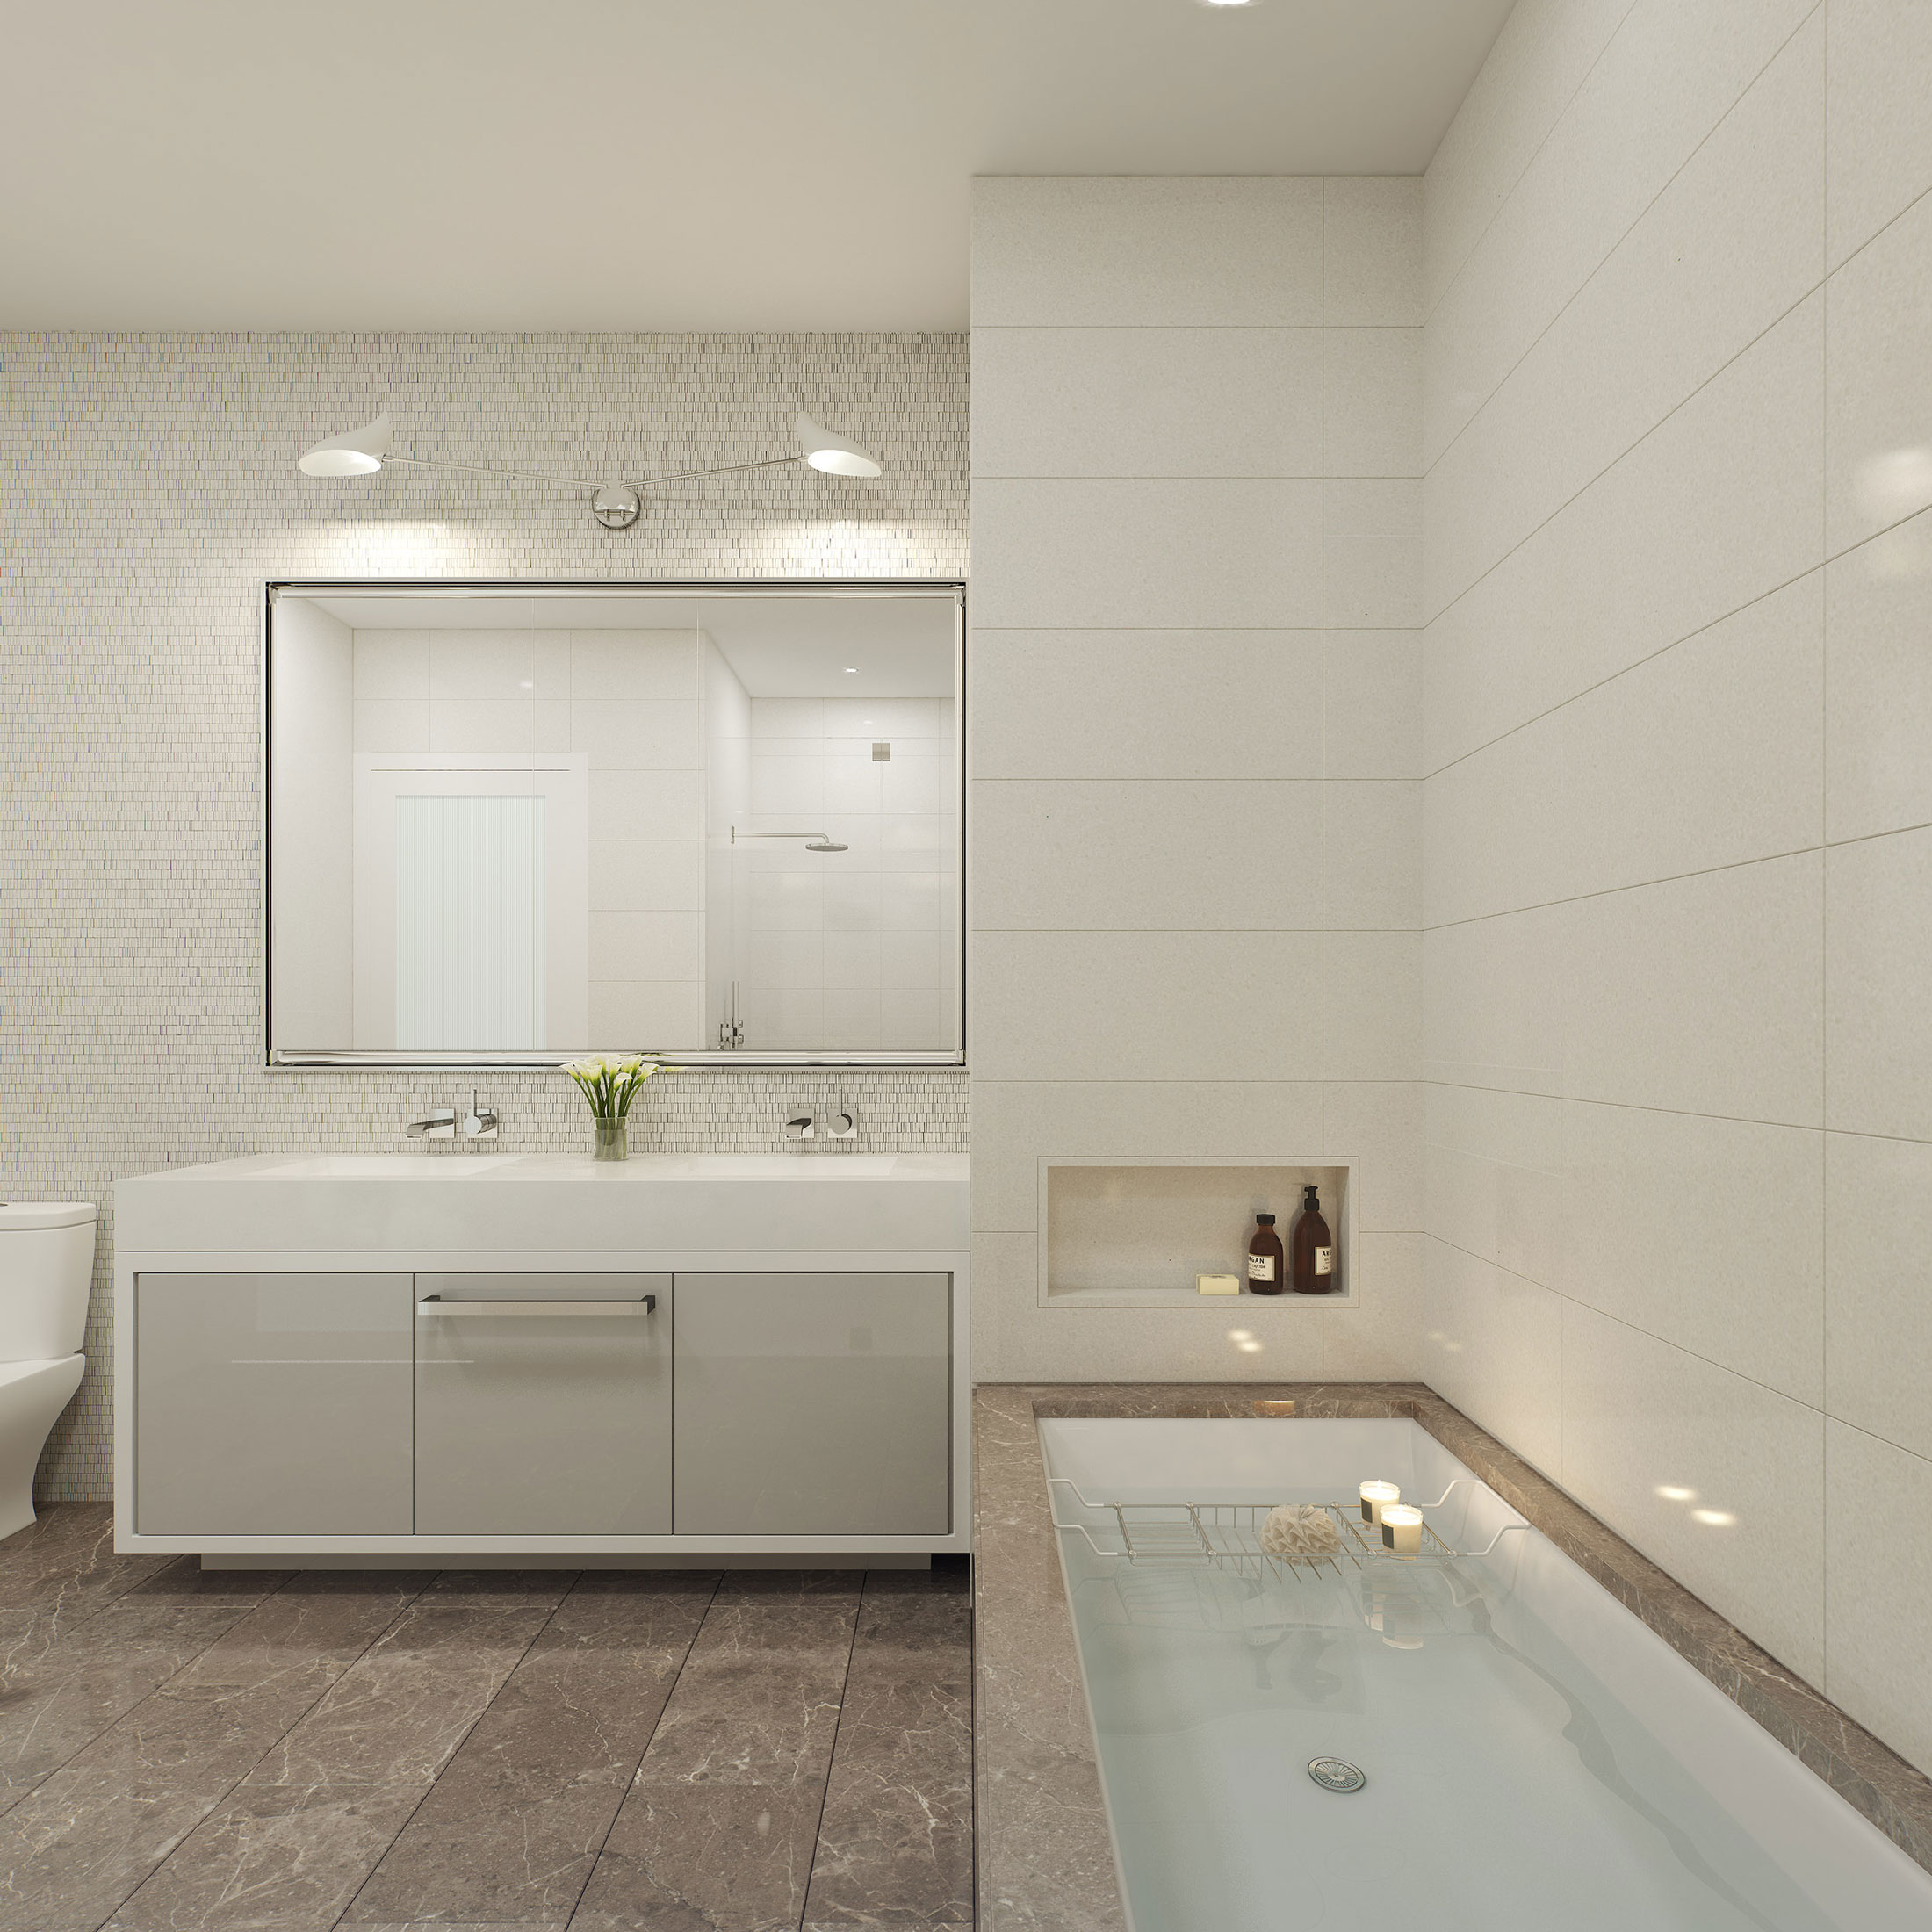 Architectural Rendering of the bathroom of the 15 Hubert Street project located in Tribeca, New York City